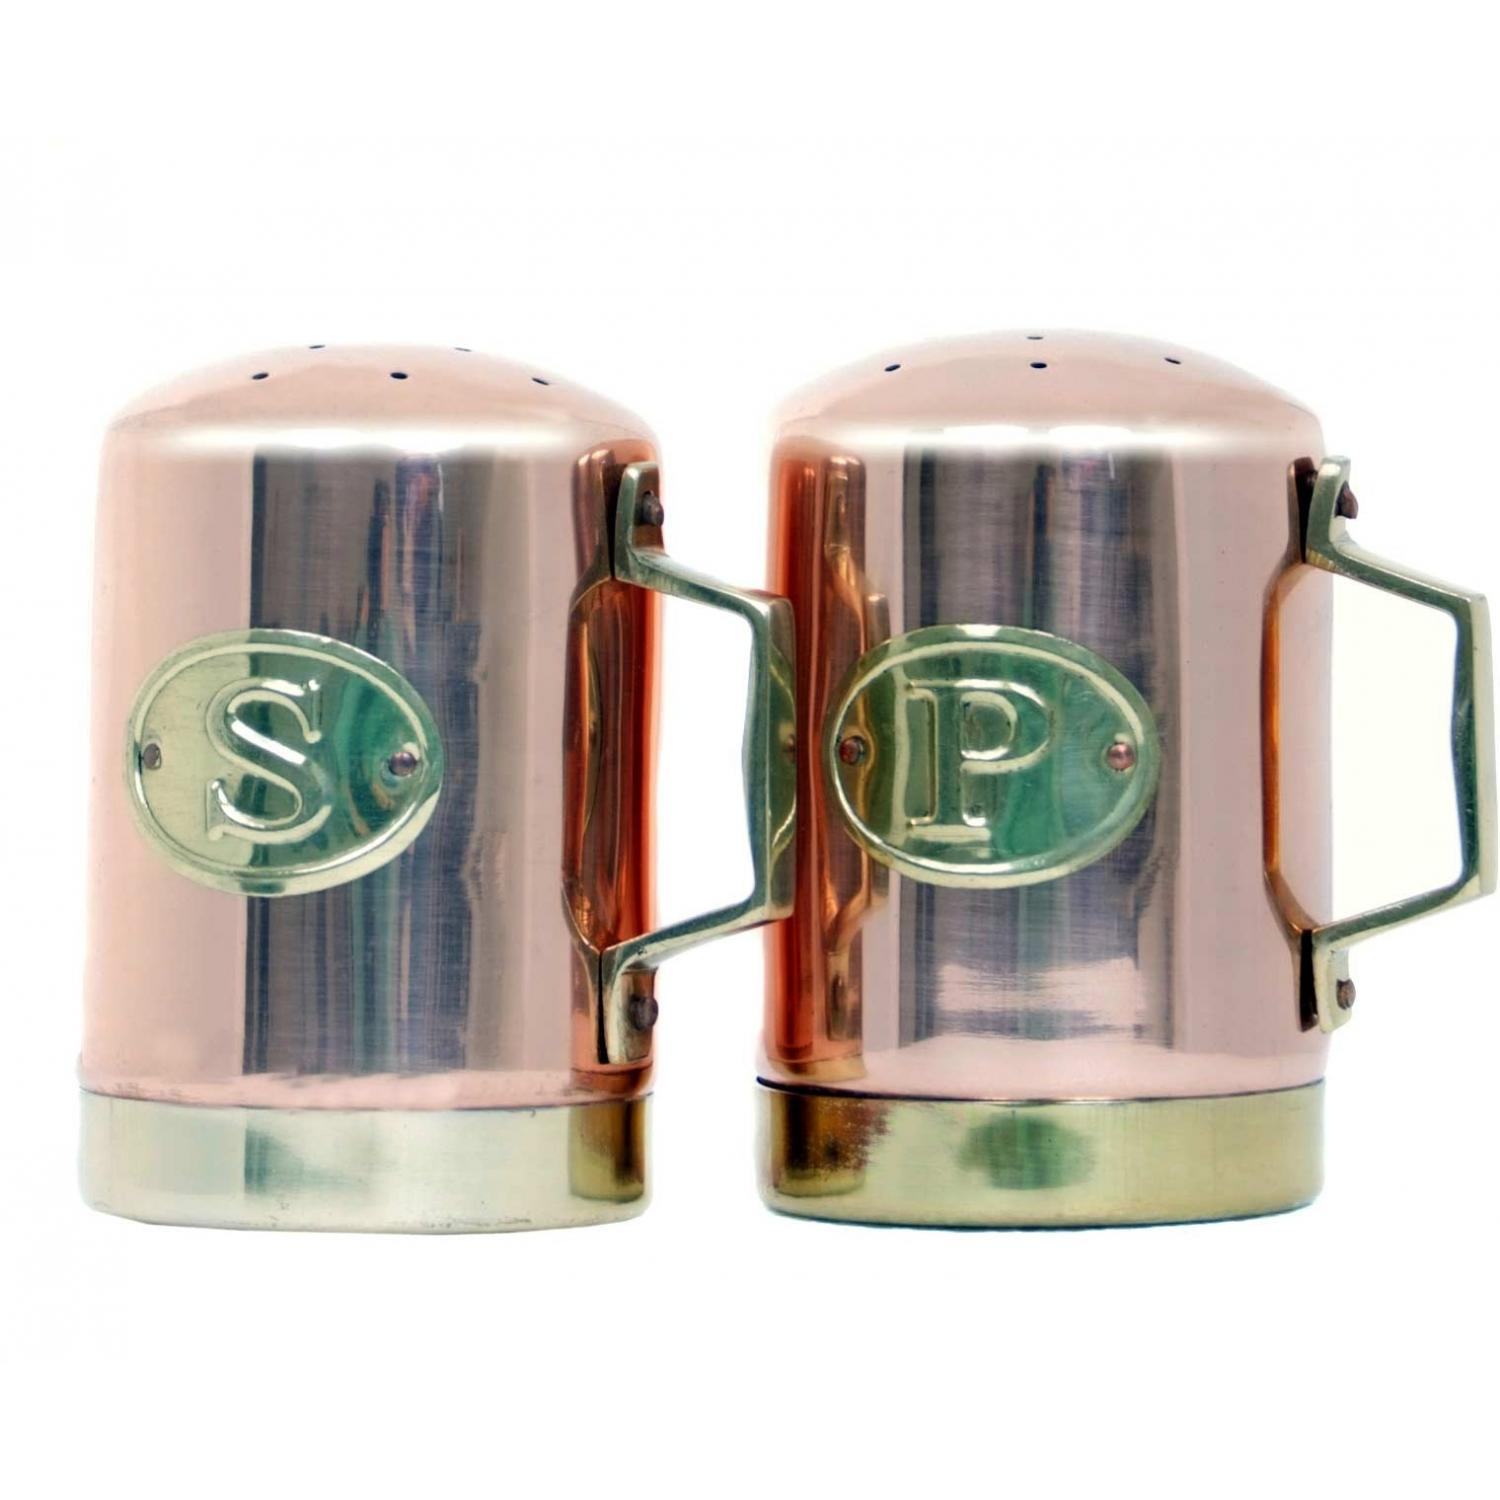 Old Dutch Copper Salt And Pepper Shakers - 4.25 Inch